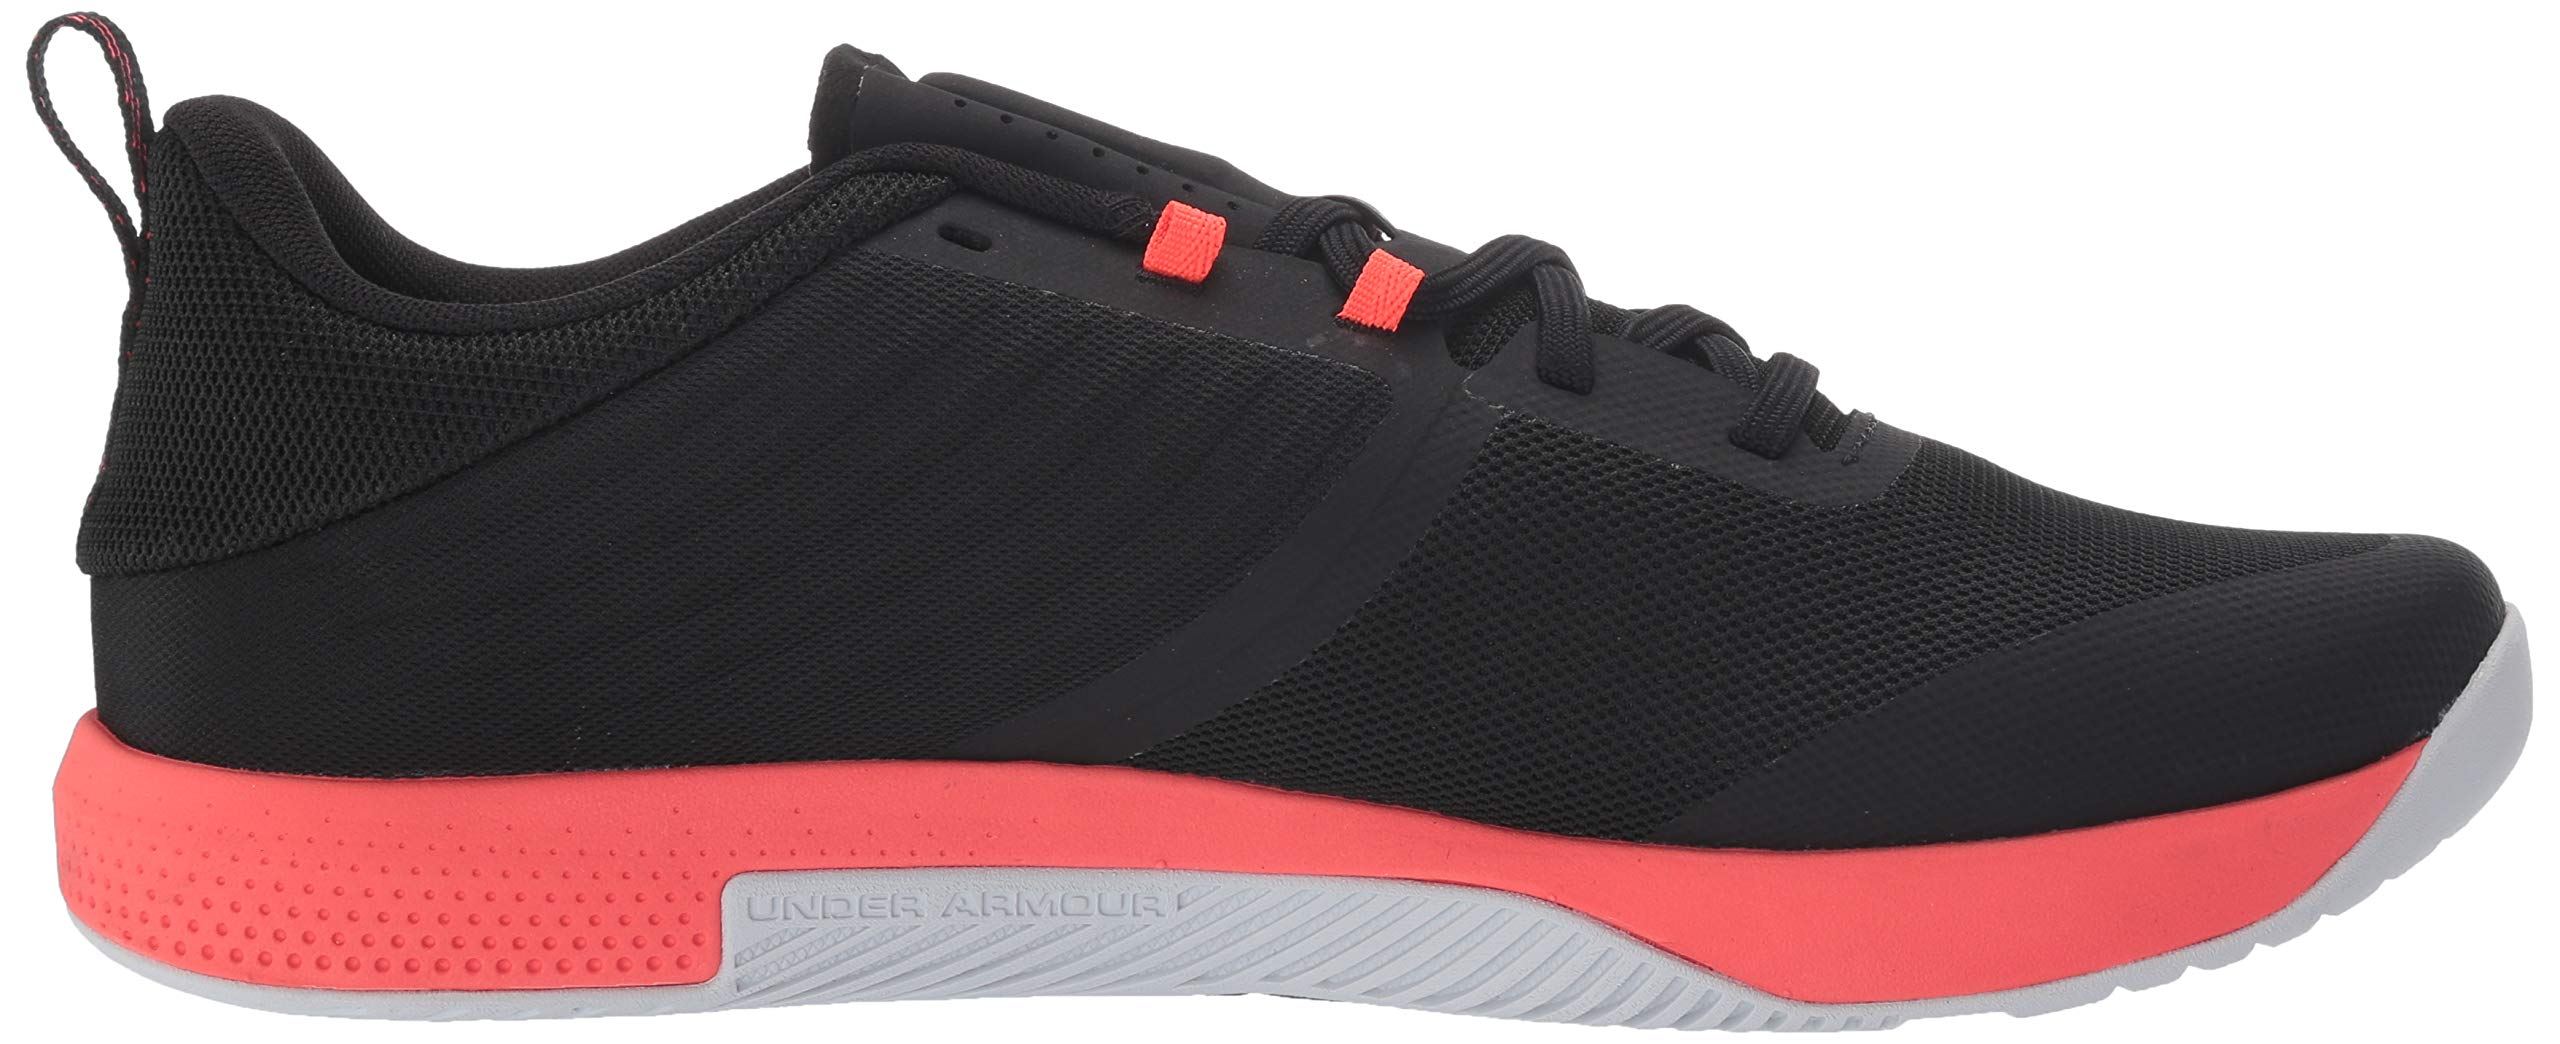 Under Armour Mens TriBase Reign Training Gym Fitness Shoes Black Sports